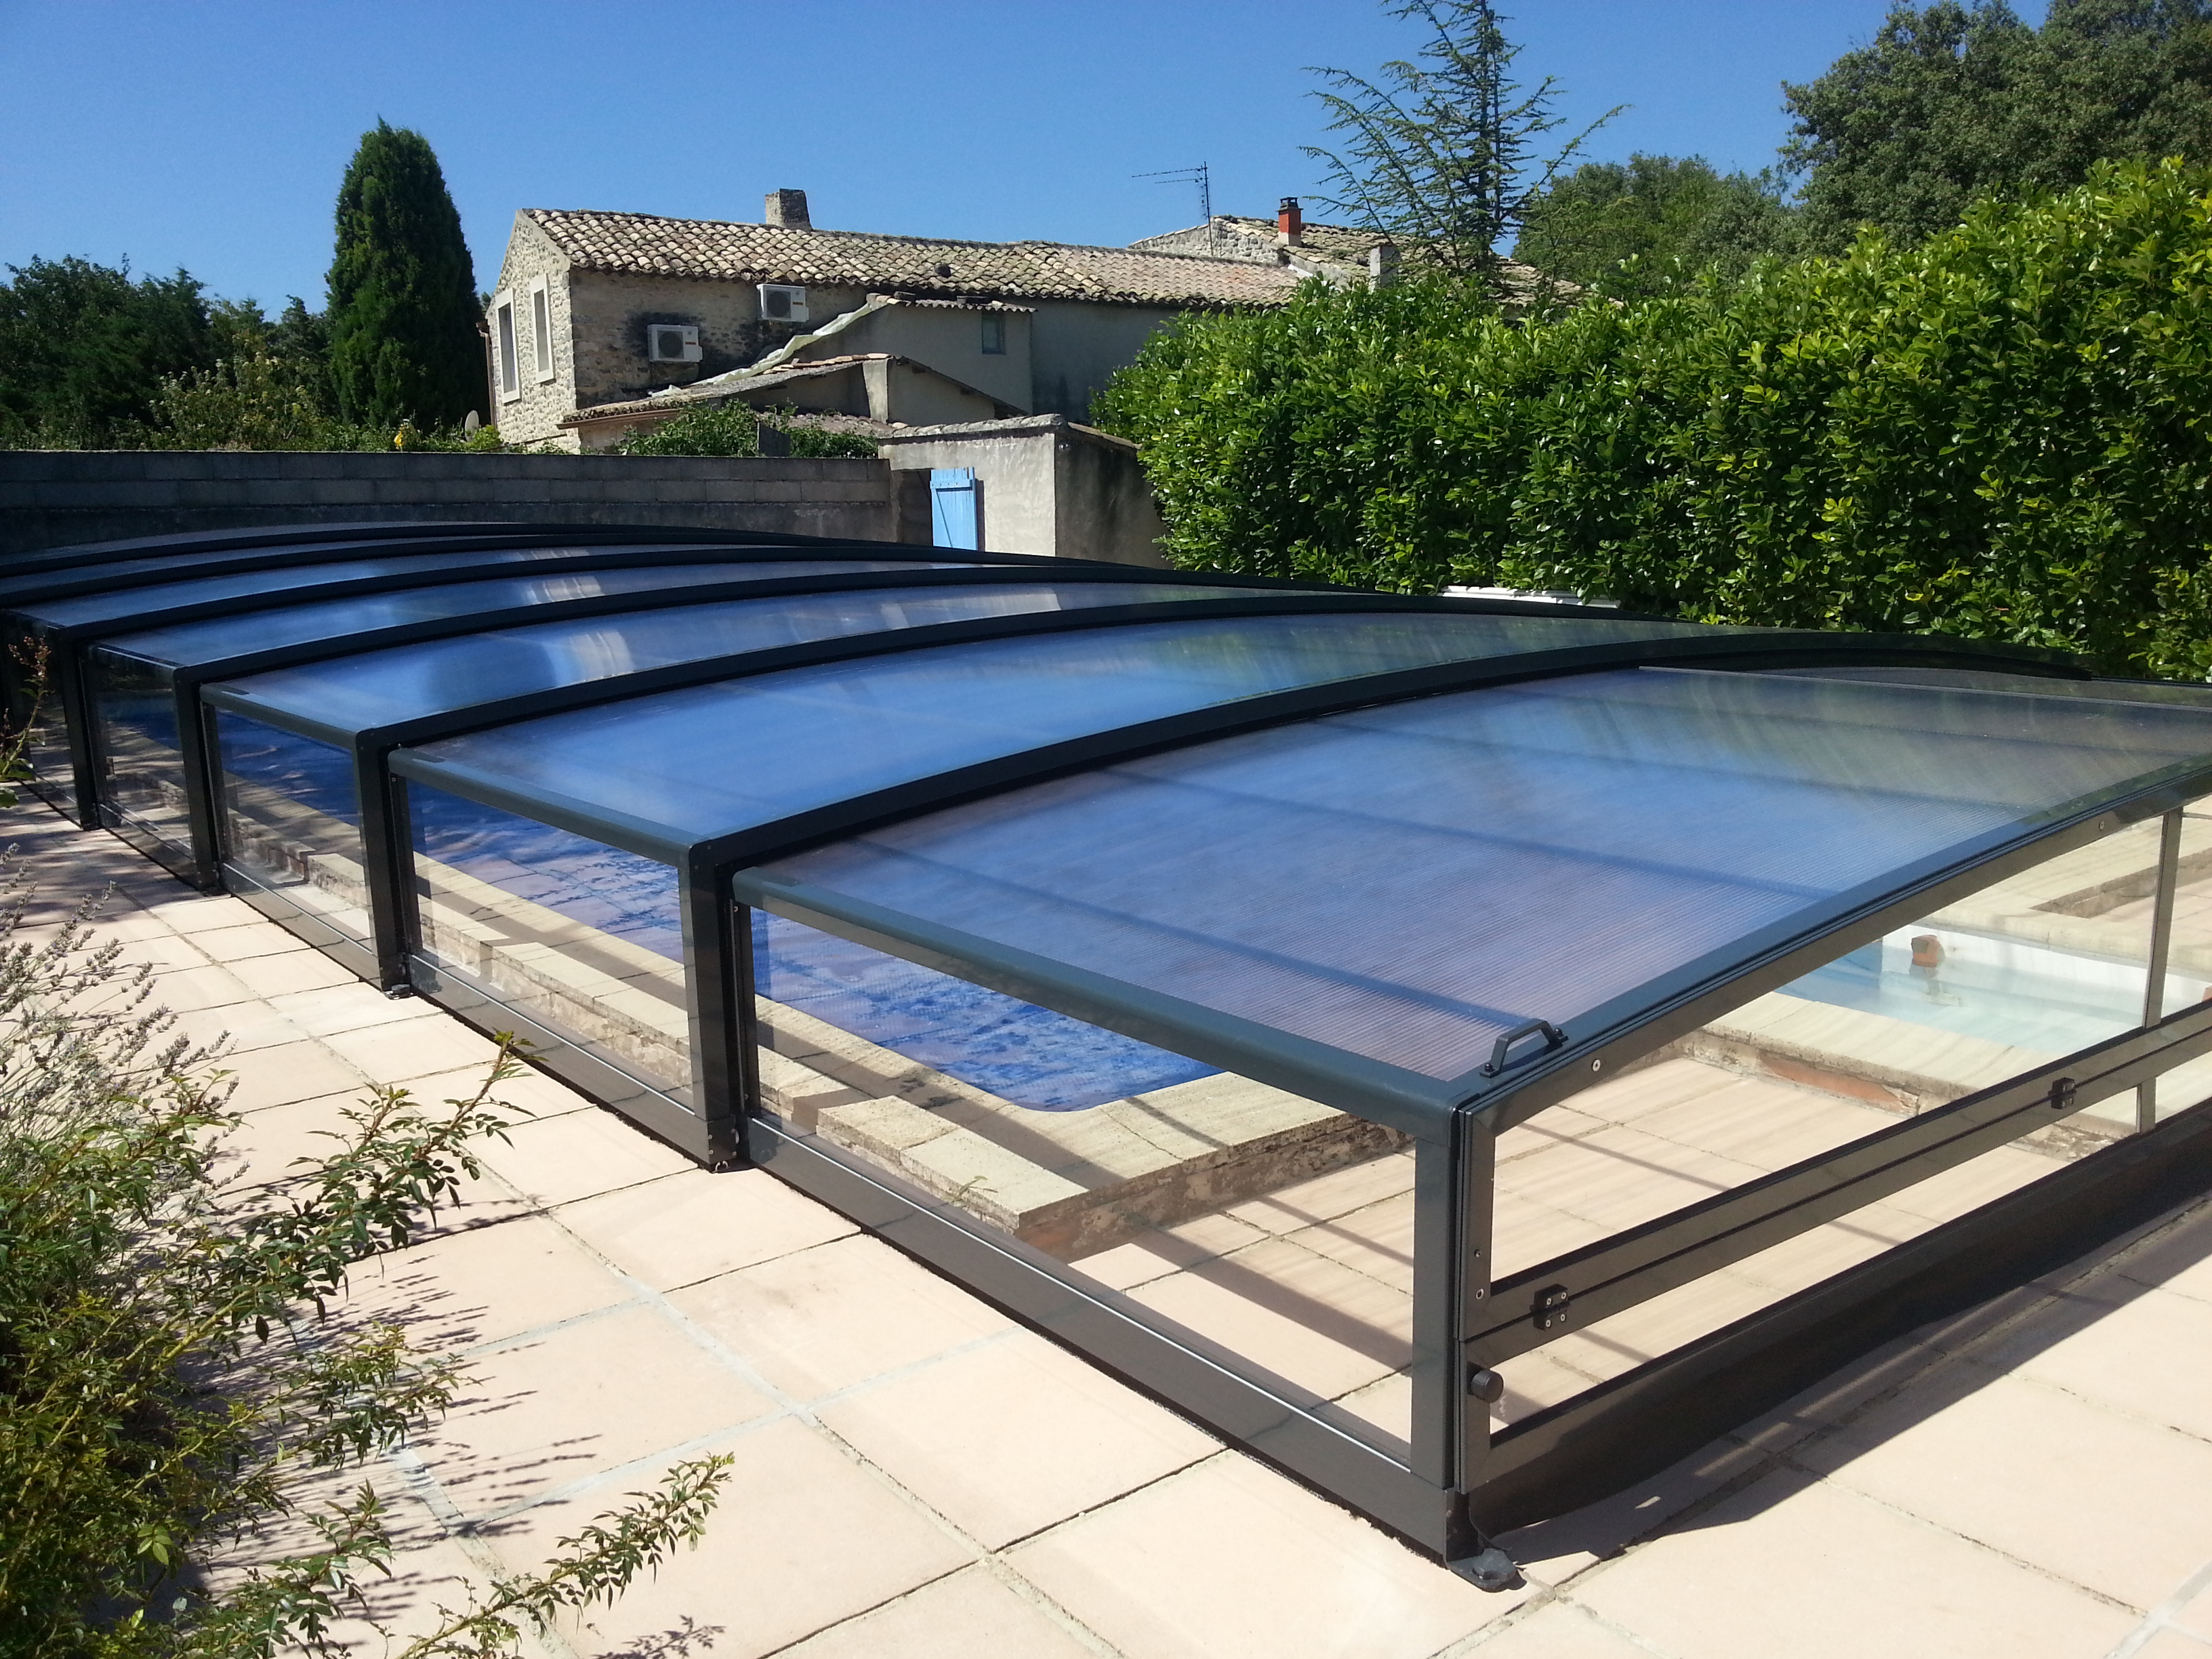 Abri piscine hors sol repliable trendy toit de piscine for Abri piscine hors sol